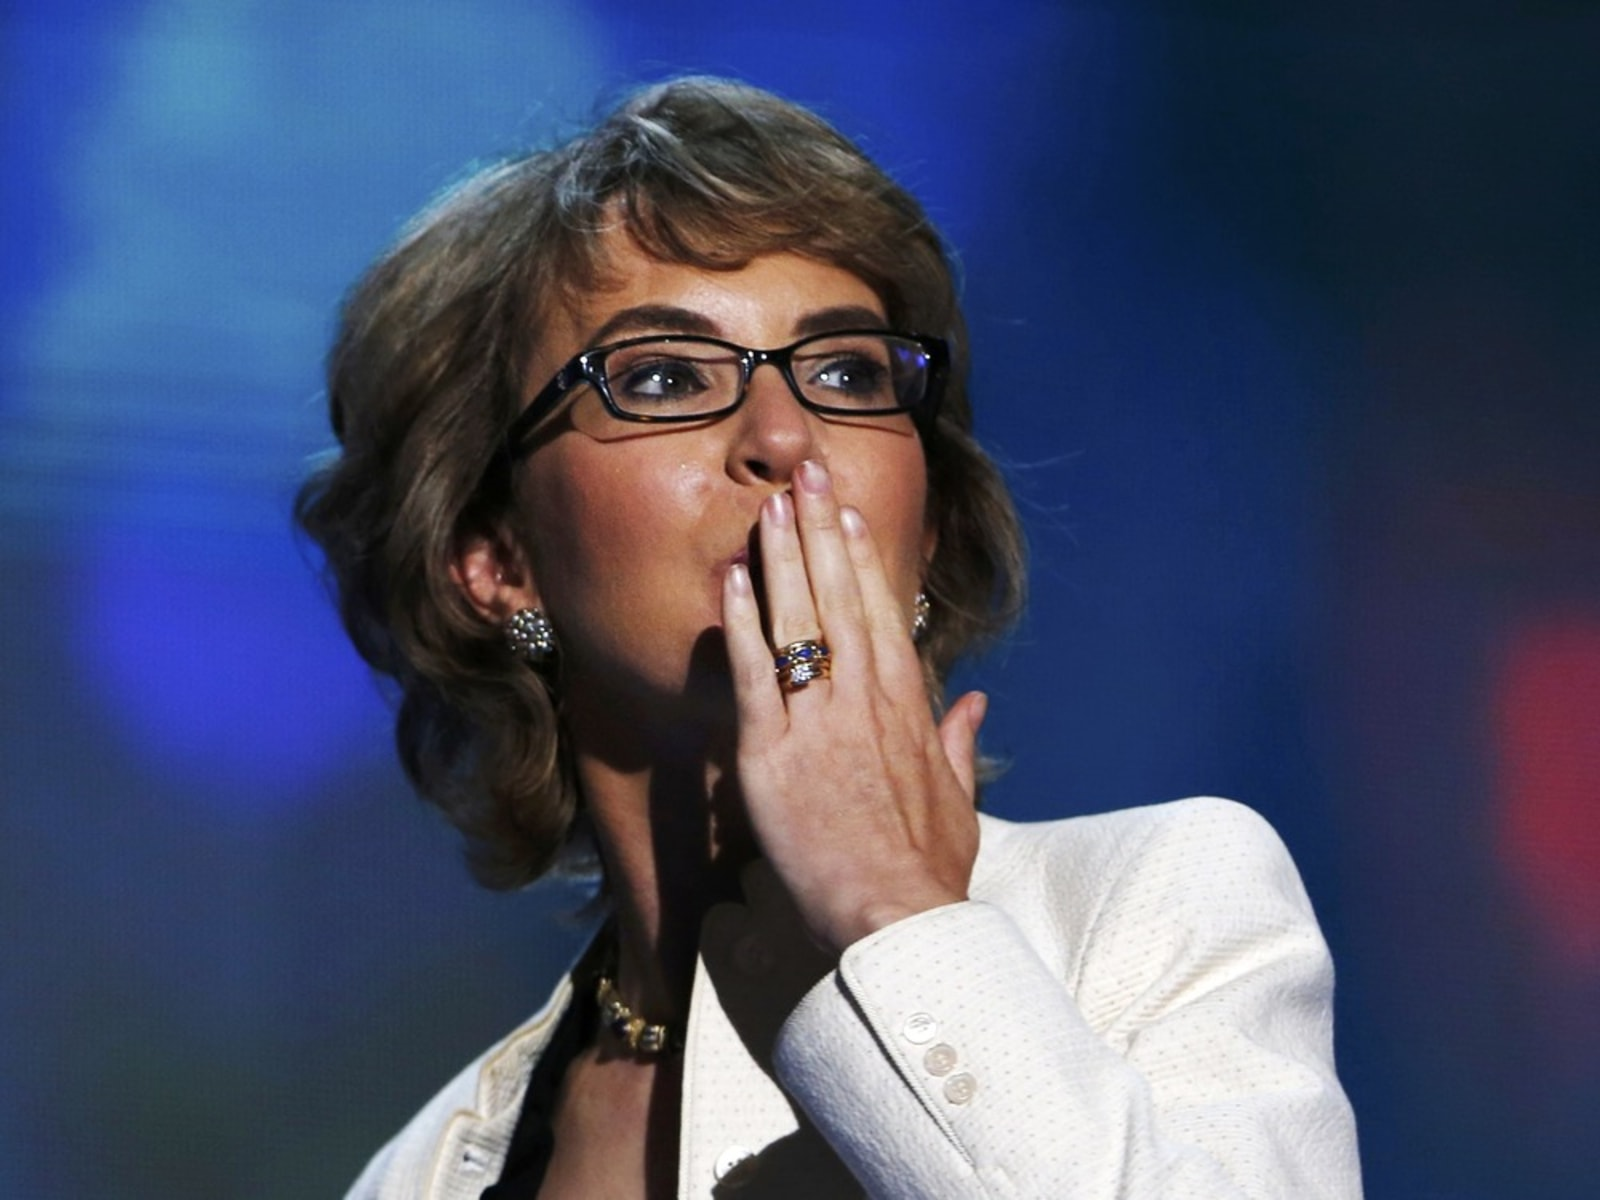 Image: Gabrielle Giffords blows a kiss after reciting the Pledge of Allegiance during the final session of the Democratic National Convention in Charlotte